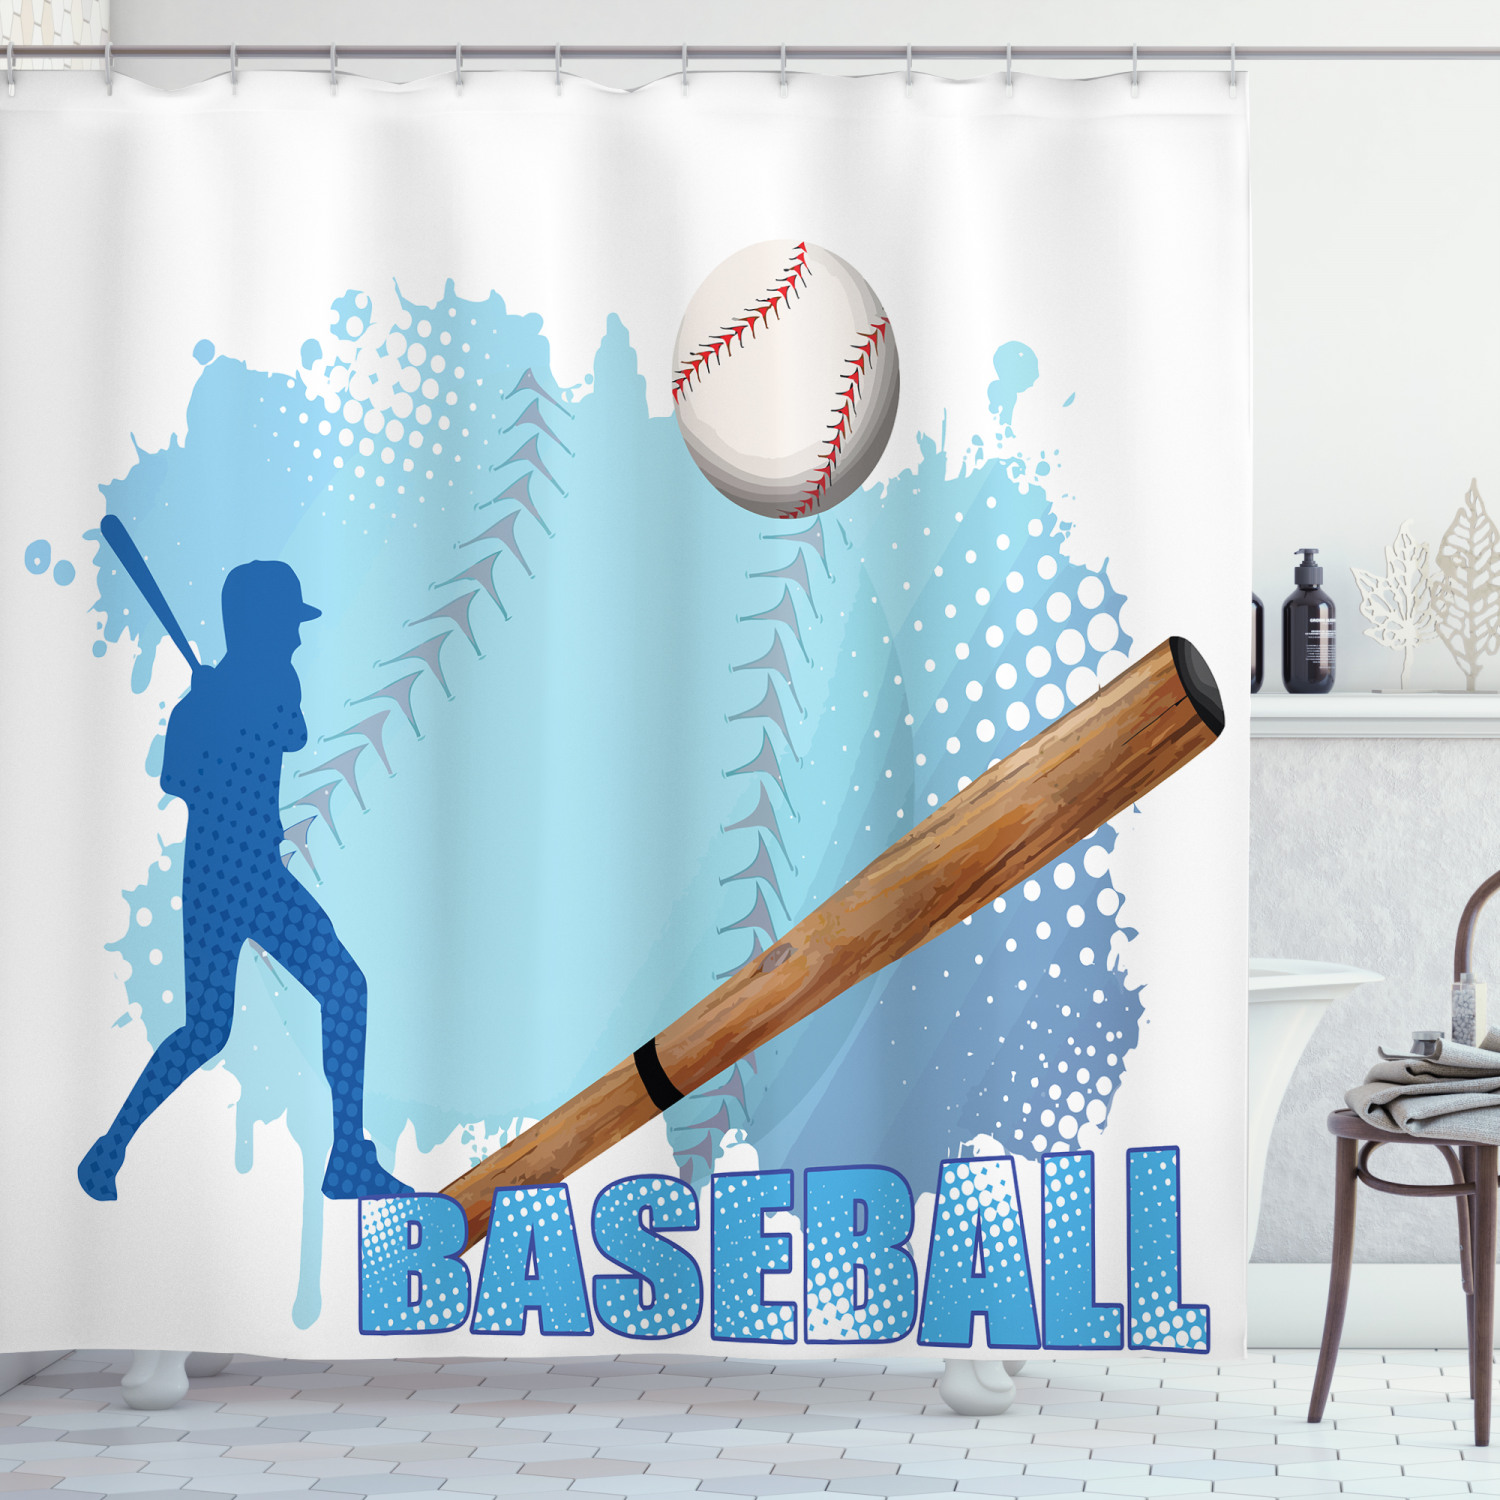 baseball shower curtain silhouette of a baseball player with basic game icons kicking with bat sports fabric bathroom set with hooks blue and